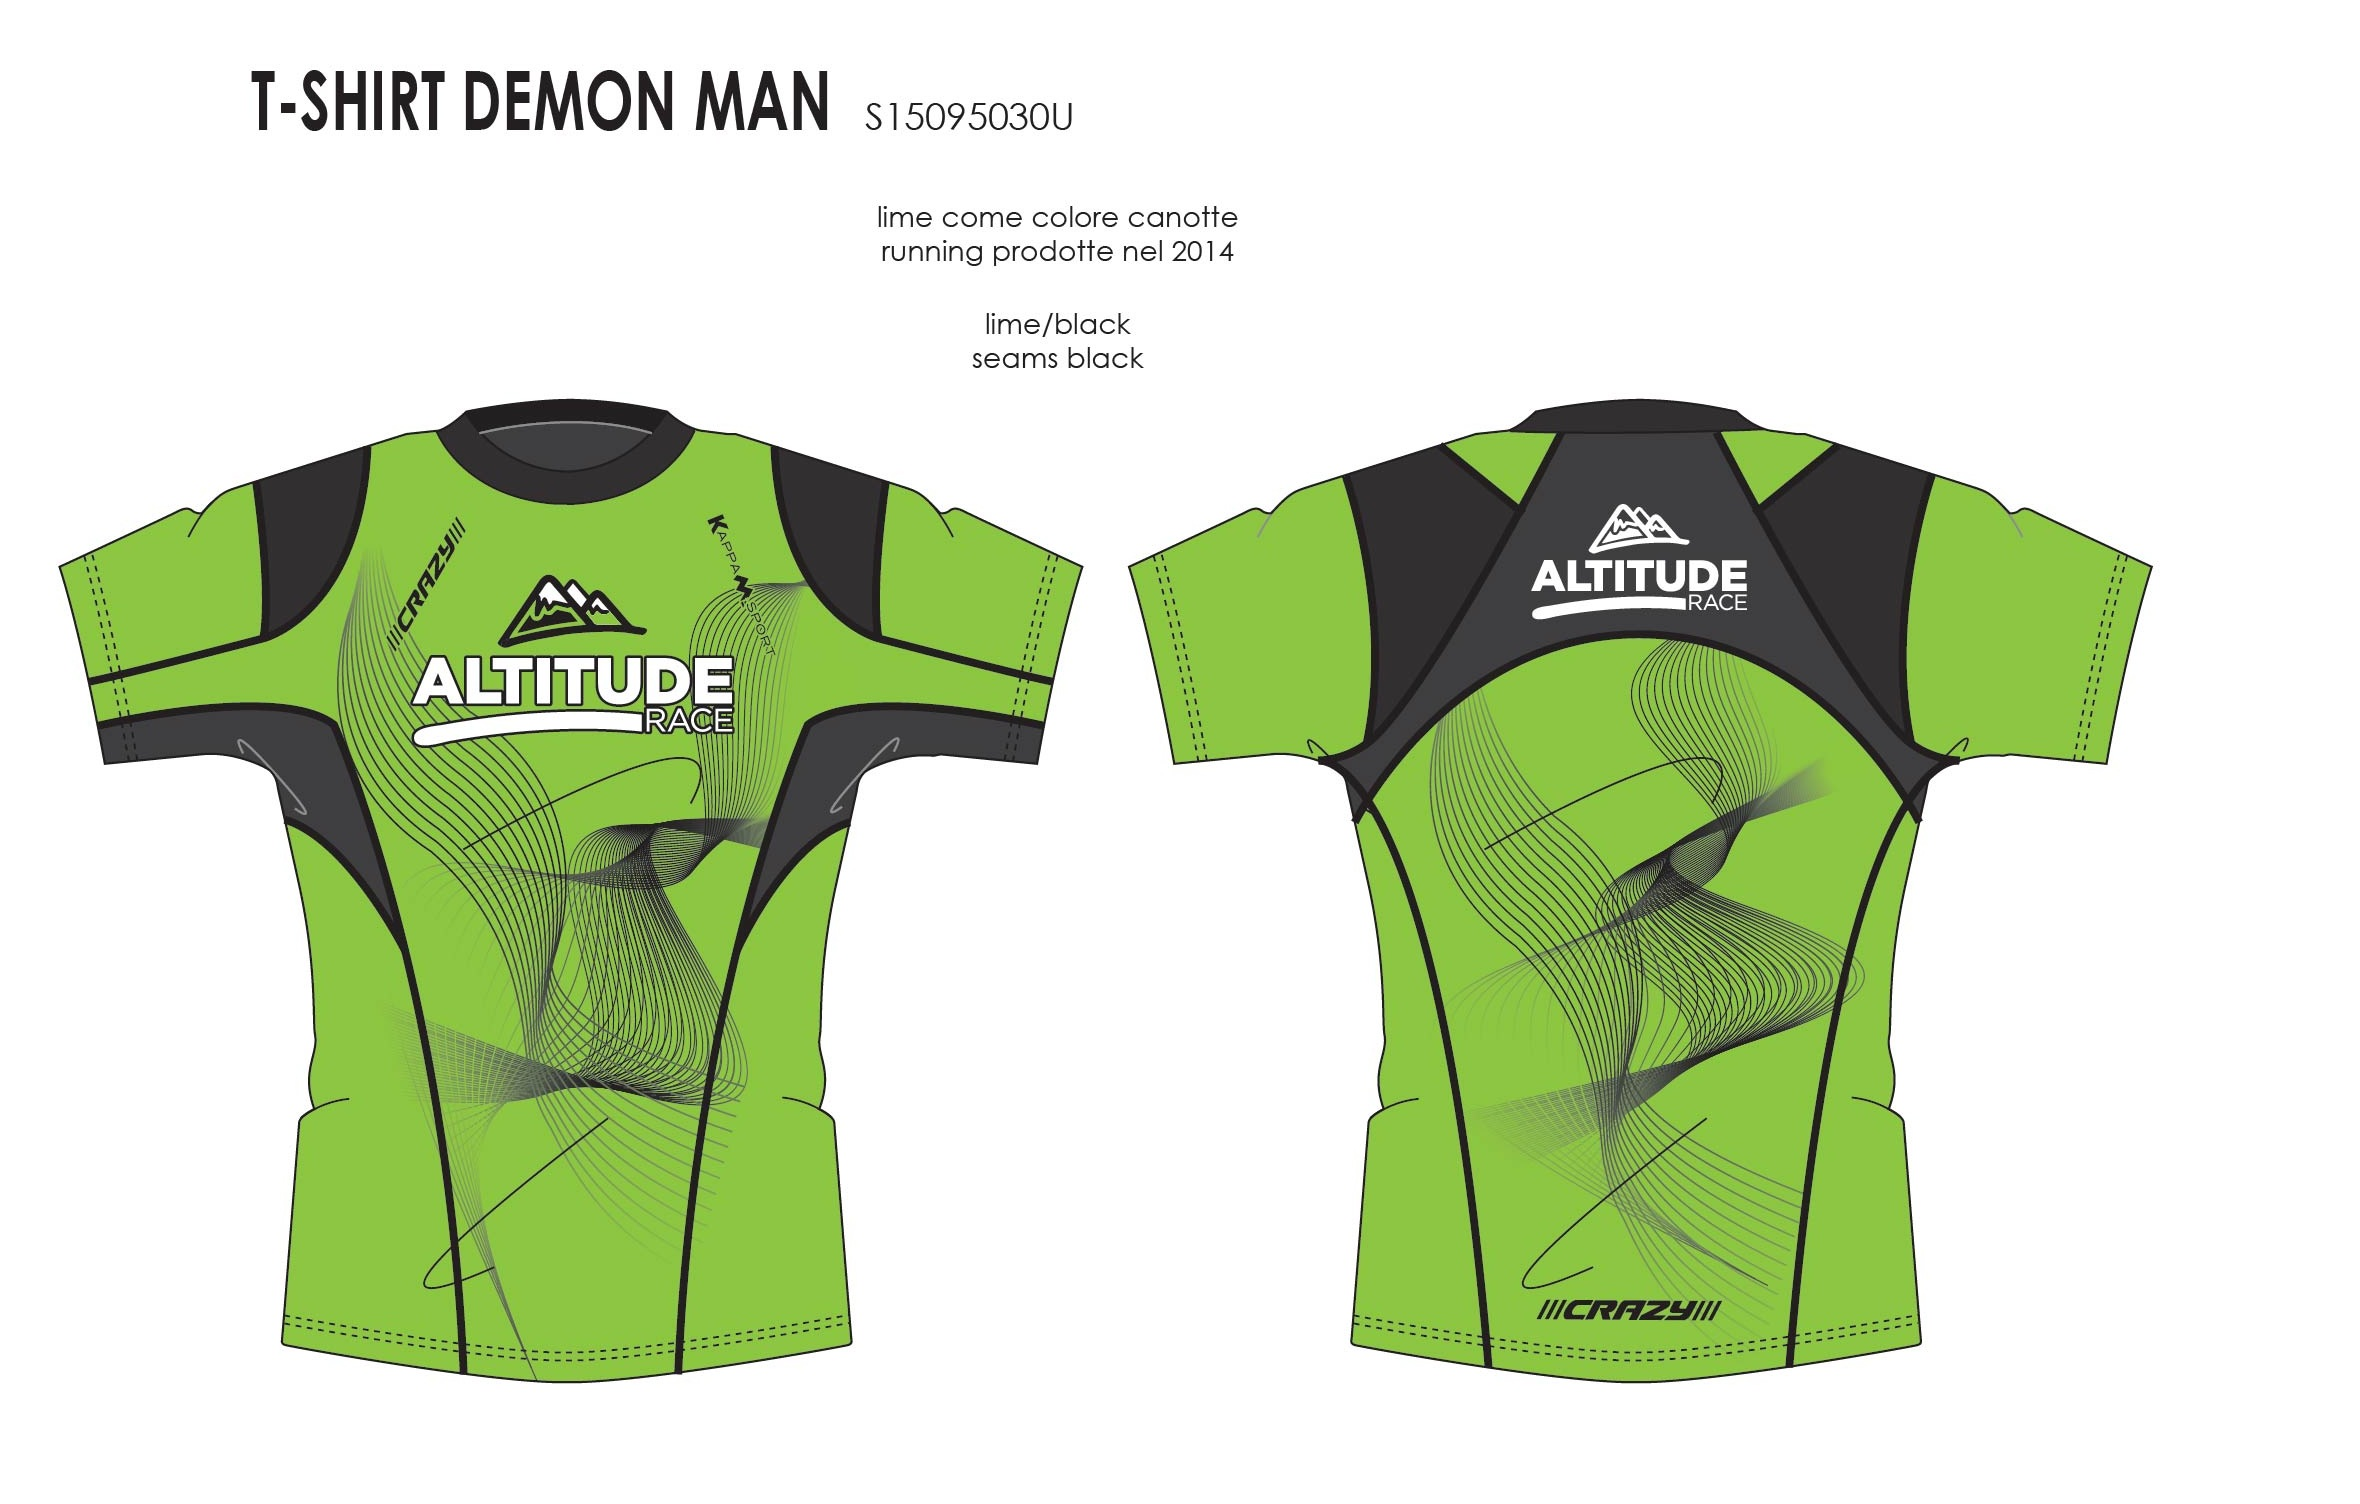 11-S15095030U T-SHIRT DEMON MAN altitude race 2